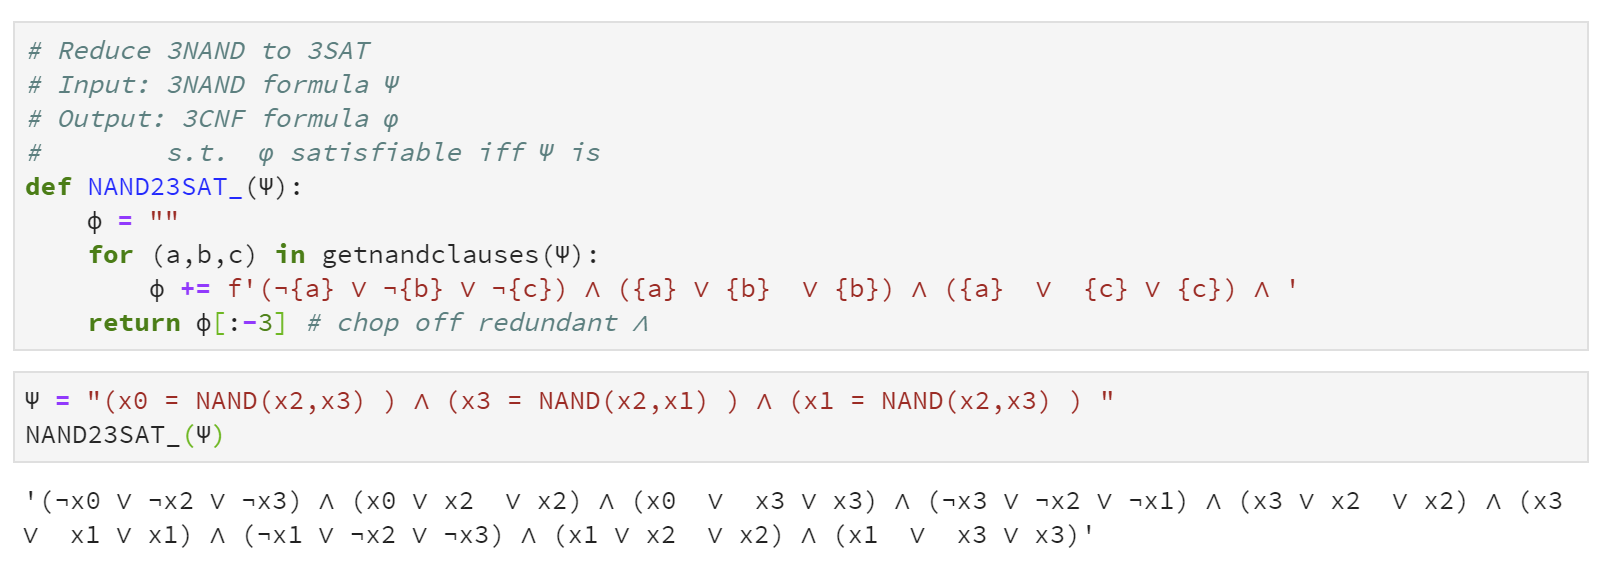 14.8: Code and example output for the reduction given in  of 3\ensuremath{\mathit{NAND}} to 3\ensuremath{\mathit{SAT}}.